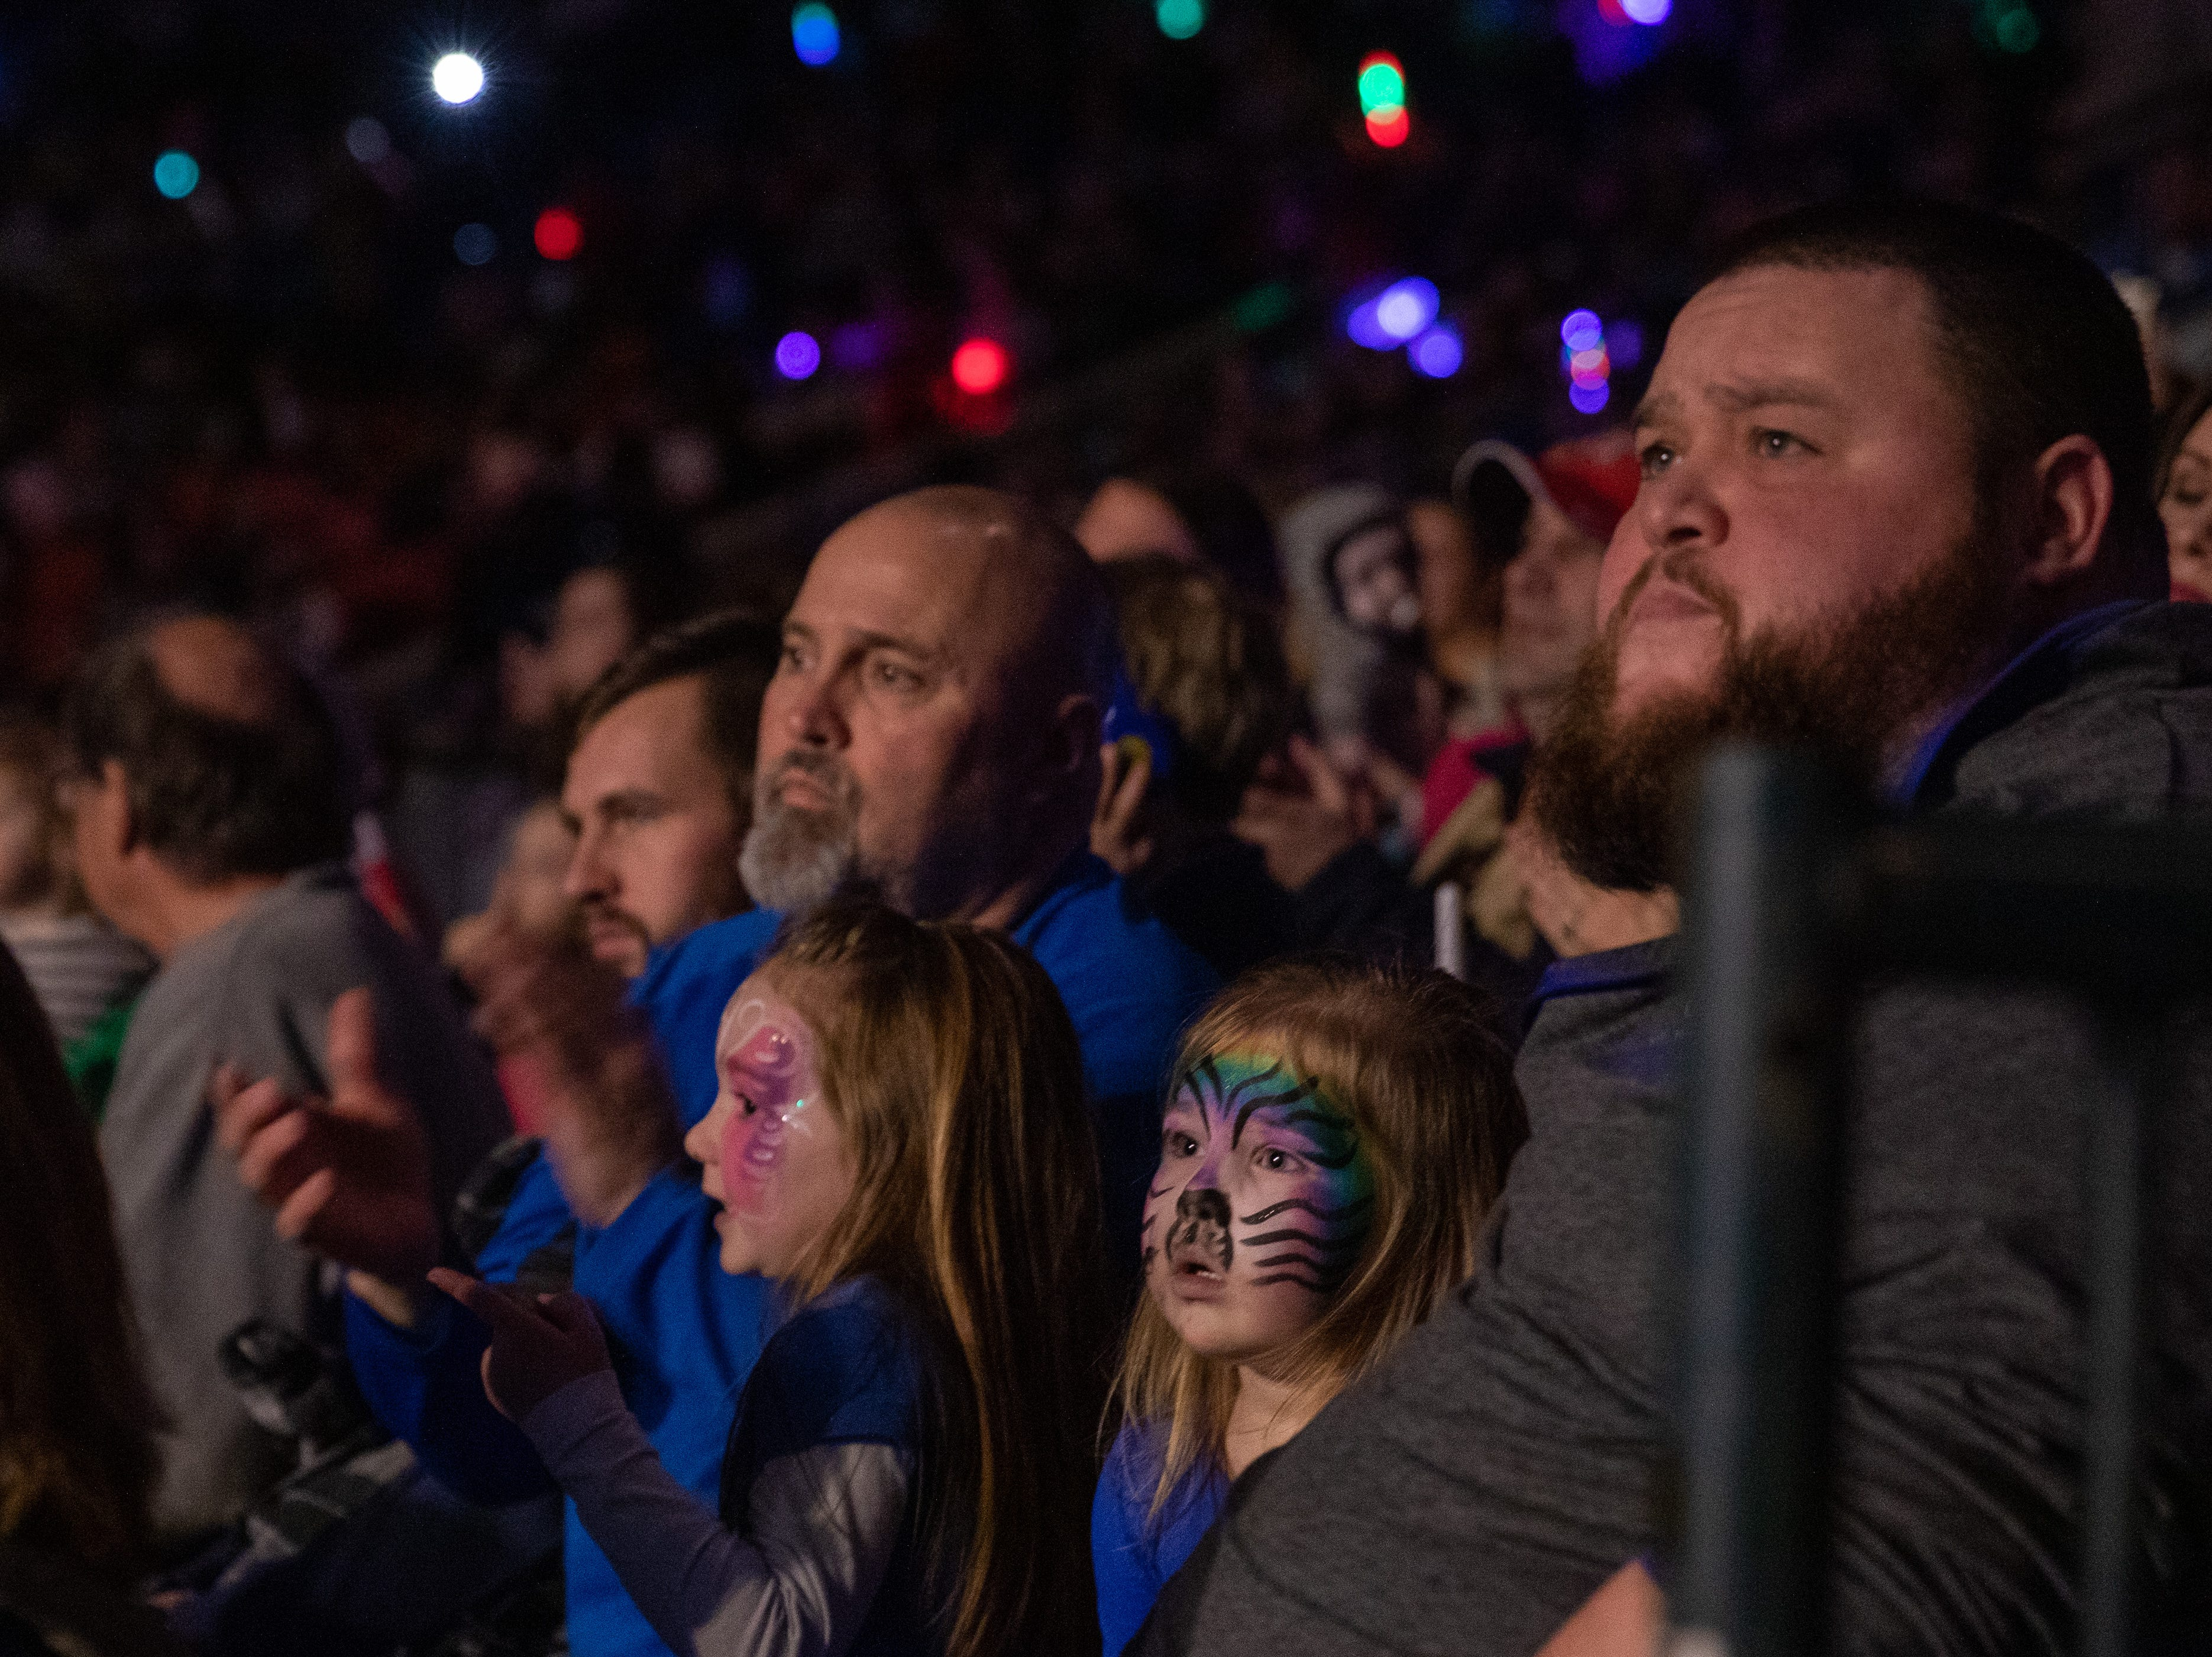 All eyes are glued on the circus performers, Saturday, Feb. 9, 2019 in Louisville Ky.